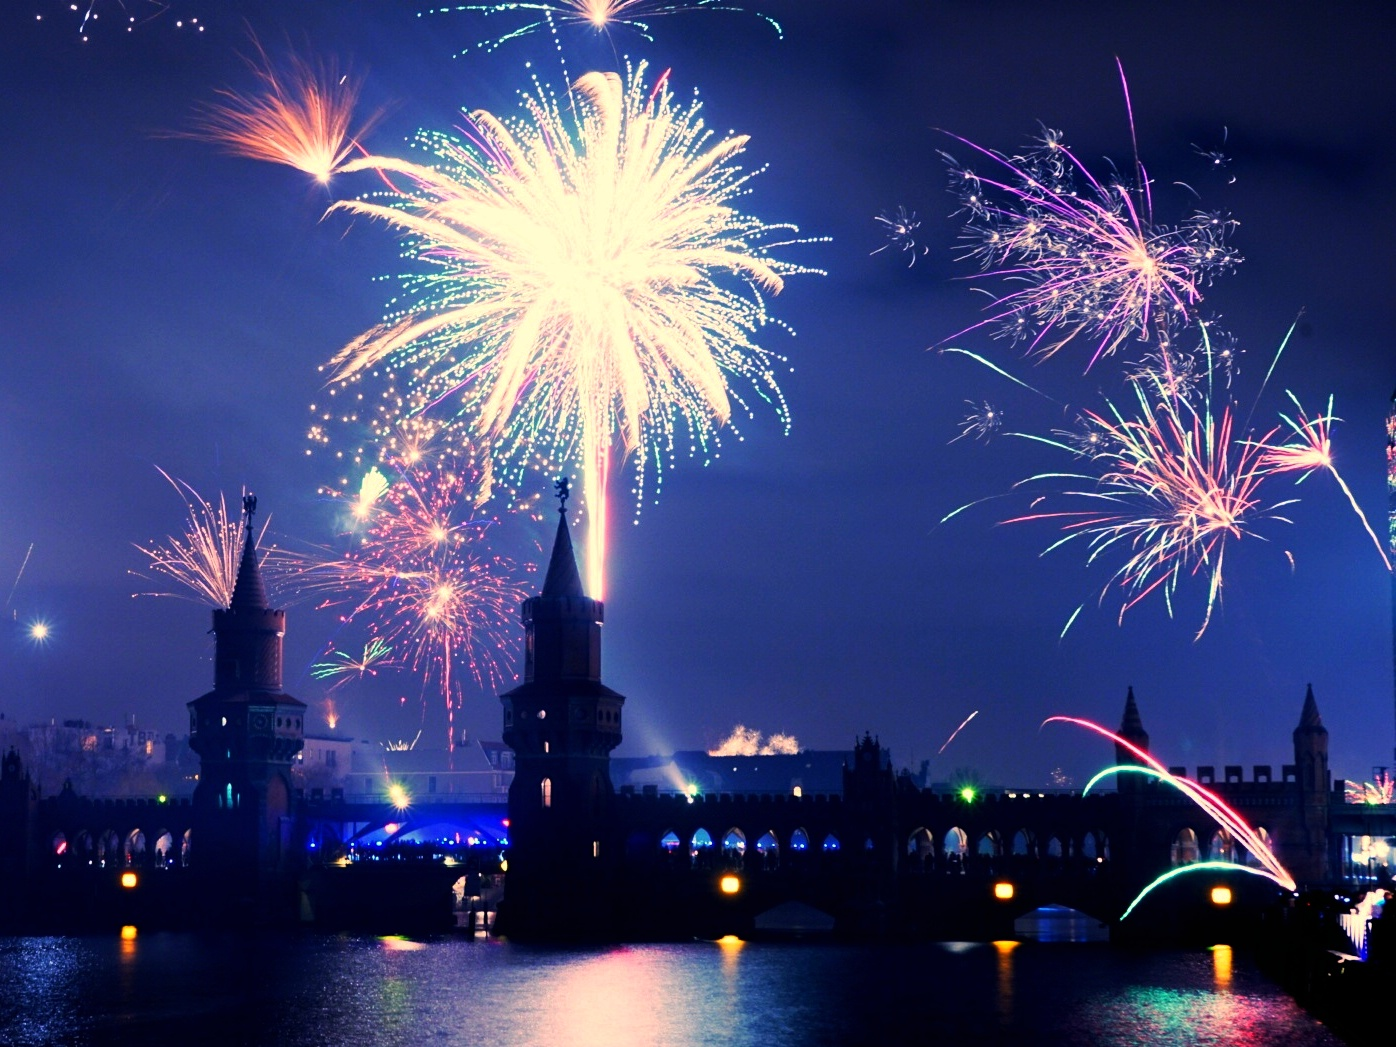 Berlin fireworks, Germany